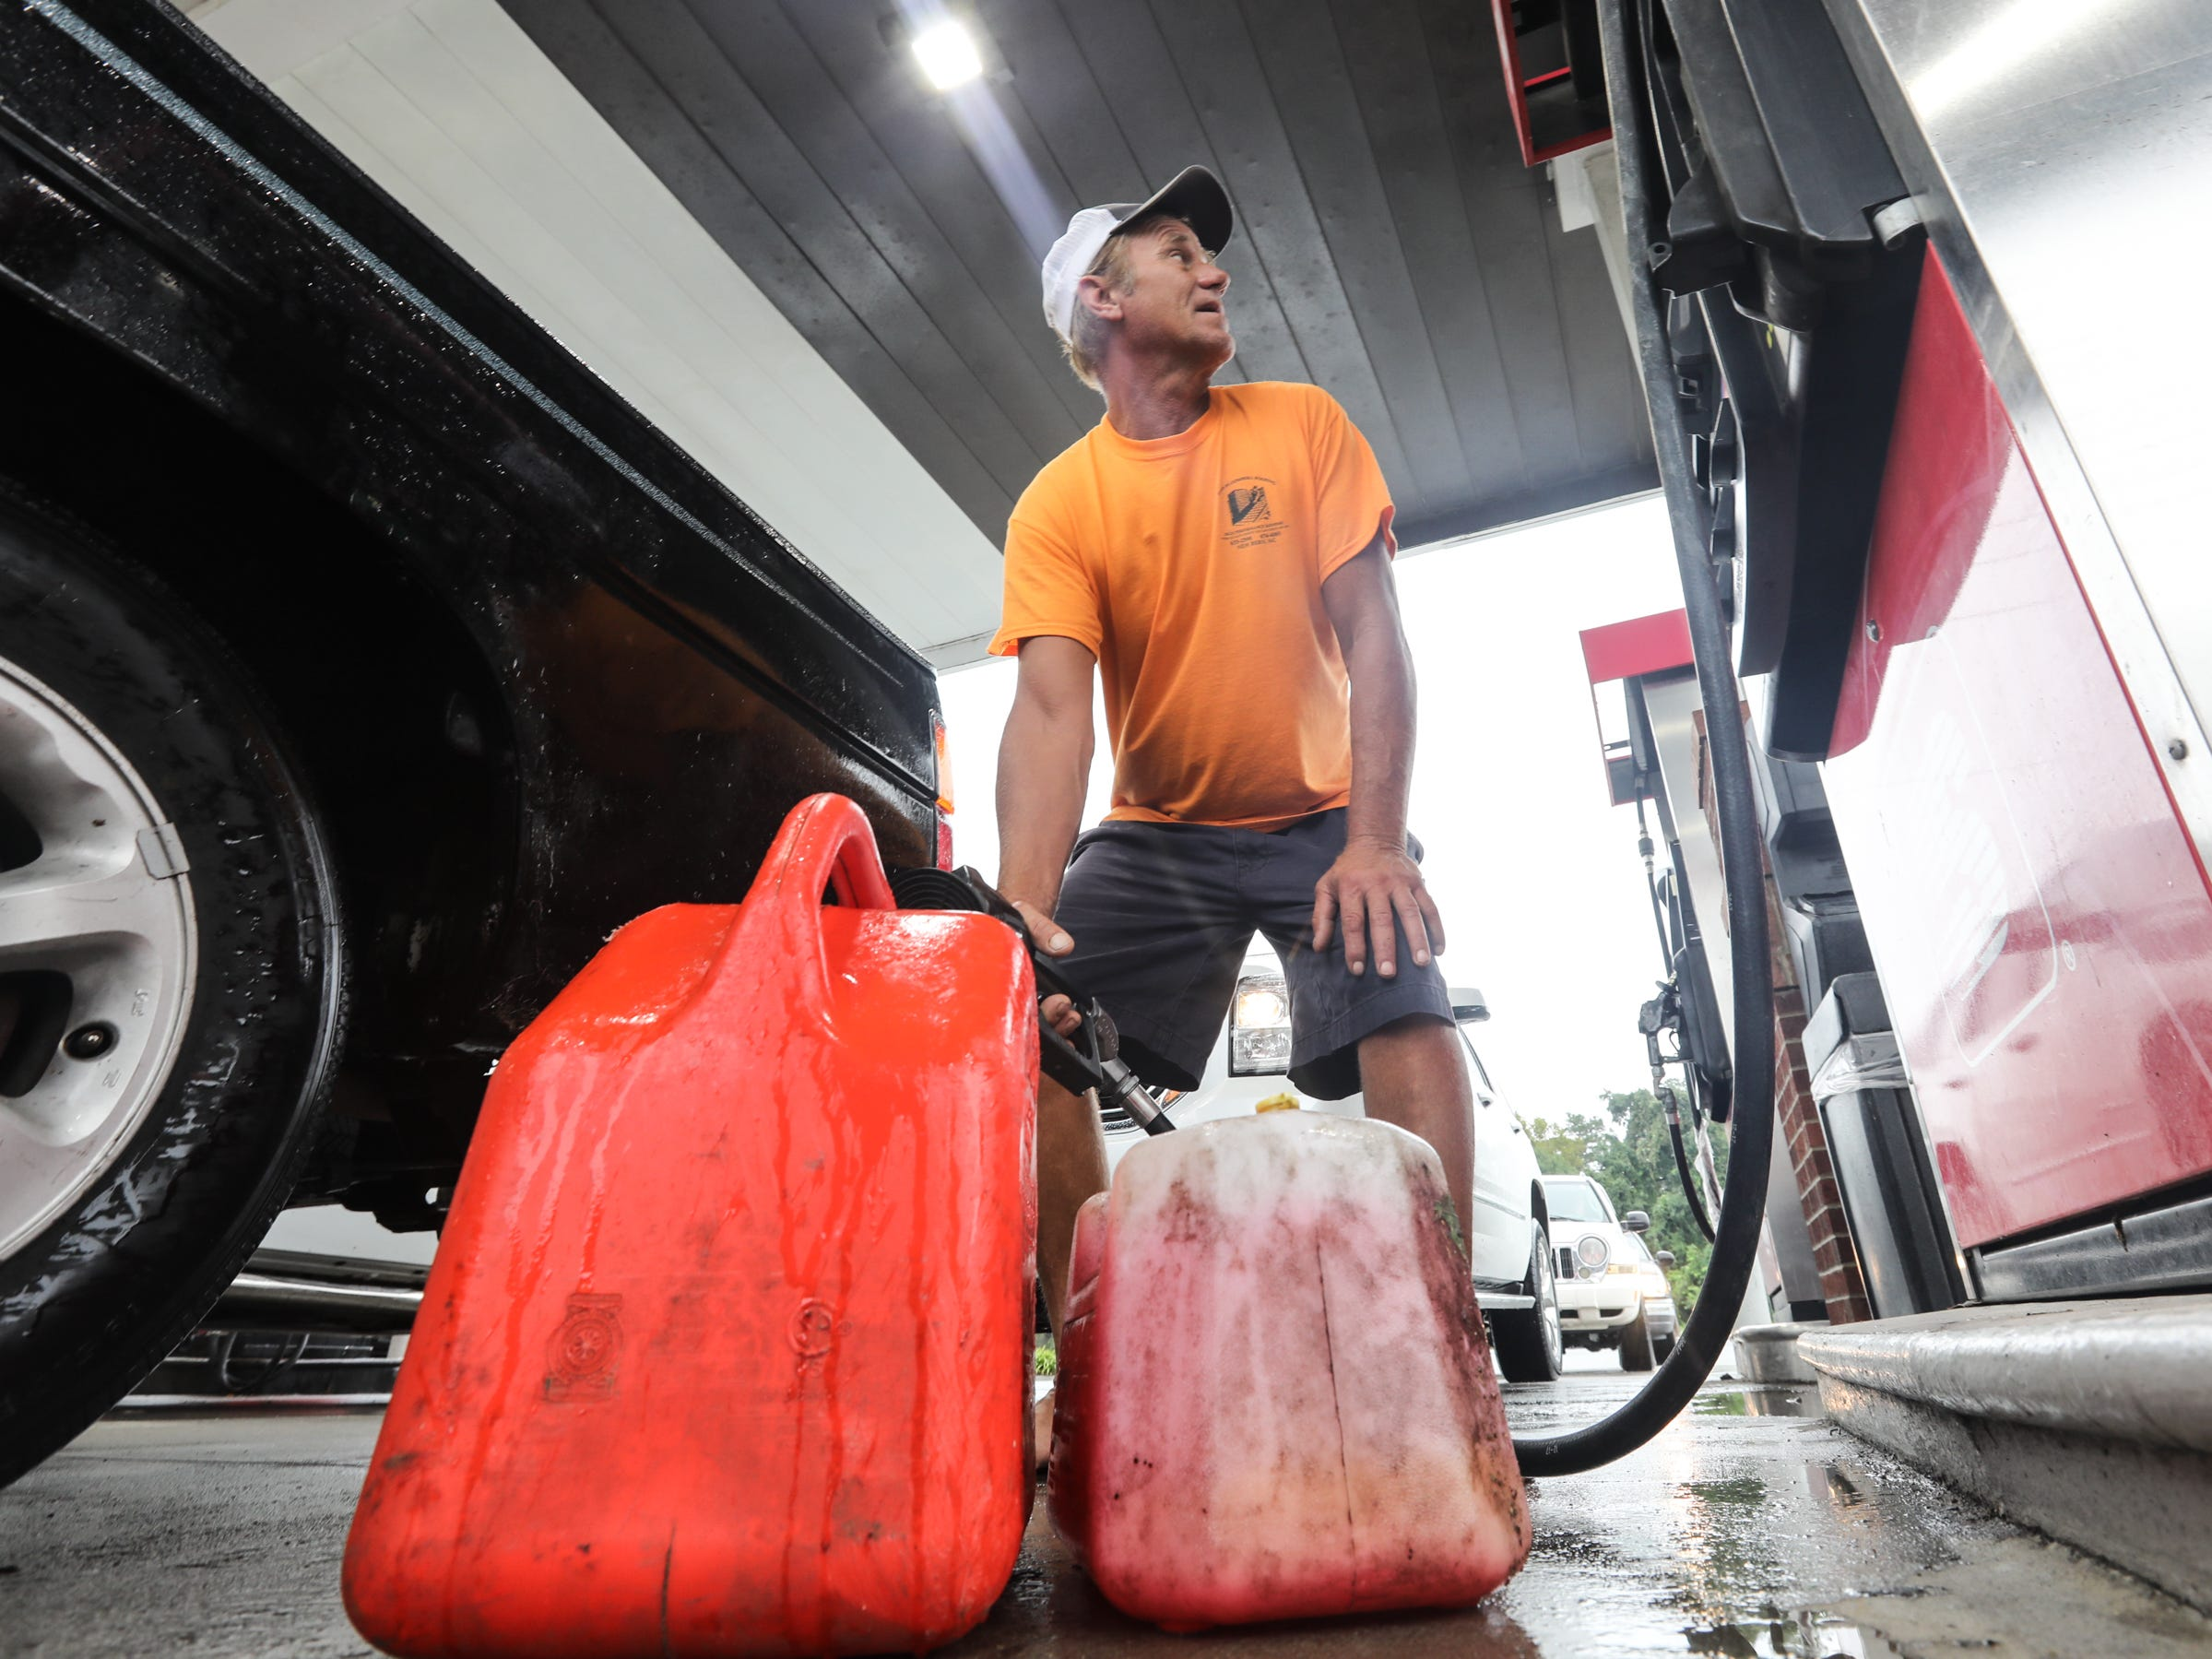 George Bloomberg fills gas cans at a Speedway gas station on US Hwy 17 in Bridgeton, North Carolina on Sunday, September 16, 2018.